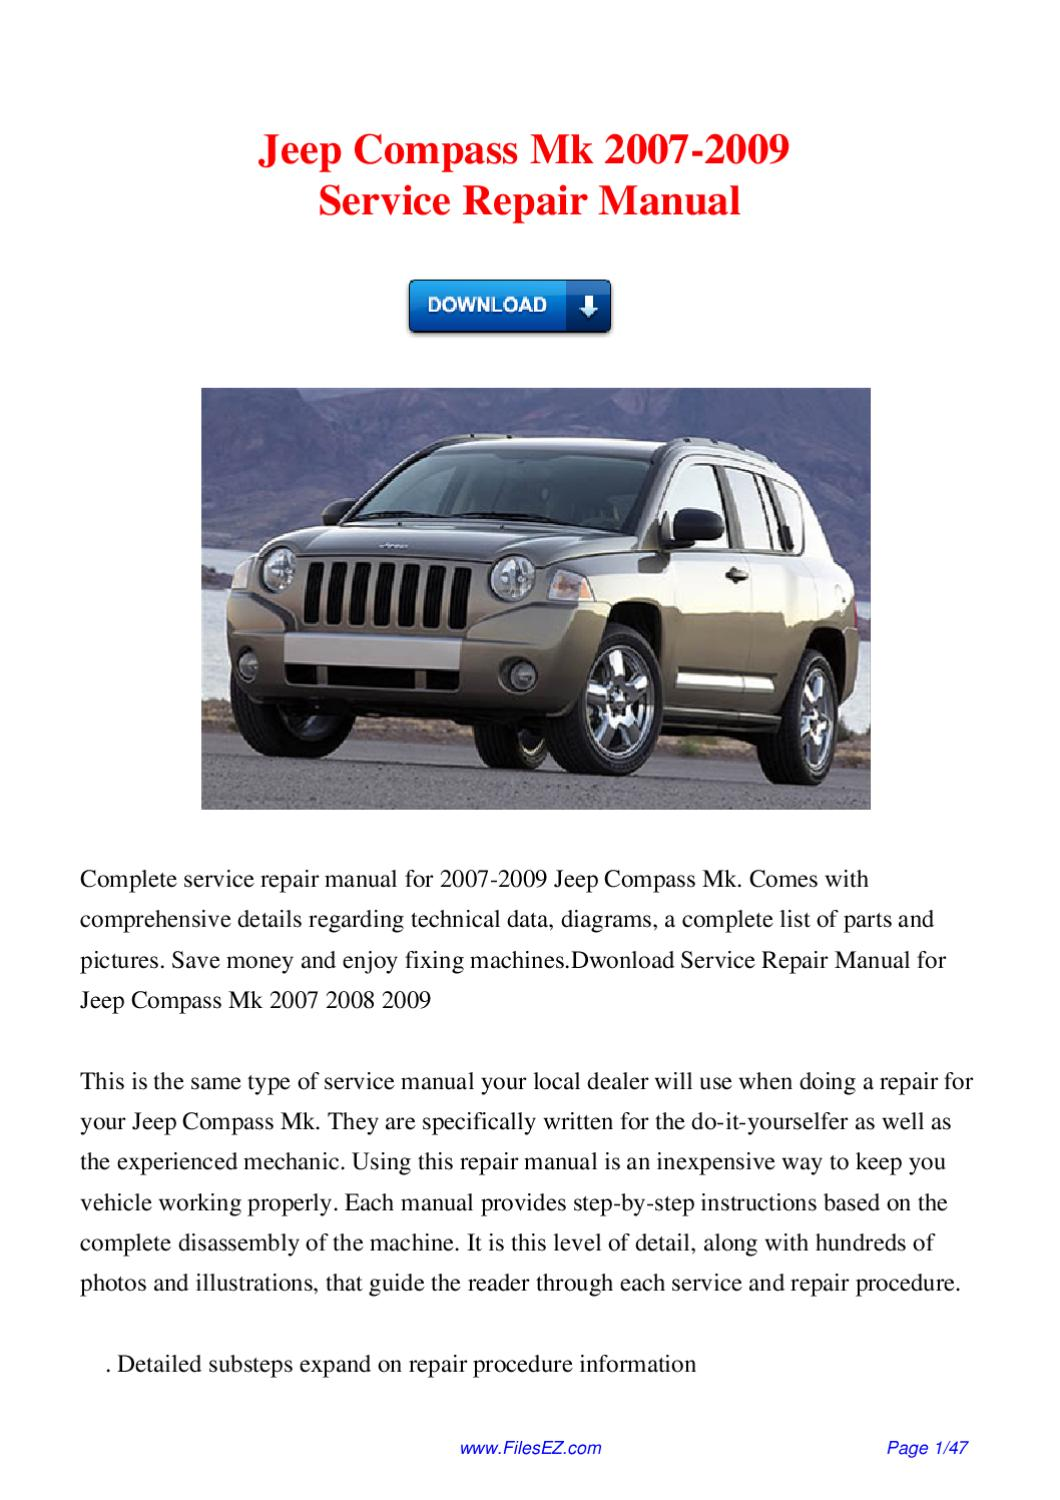 jeep compass mk 2007 2009 service repair manual by david jeep compass  owners manual 2016 jeep compass owners manual 2014